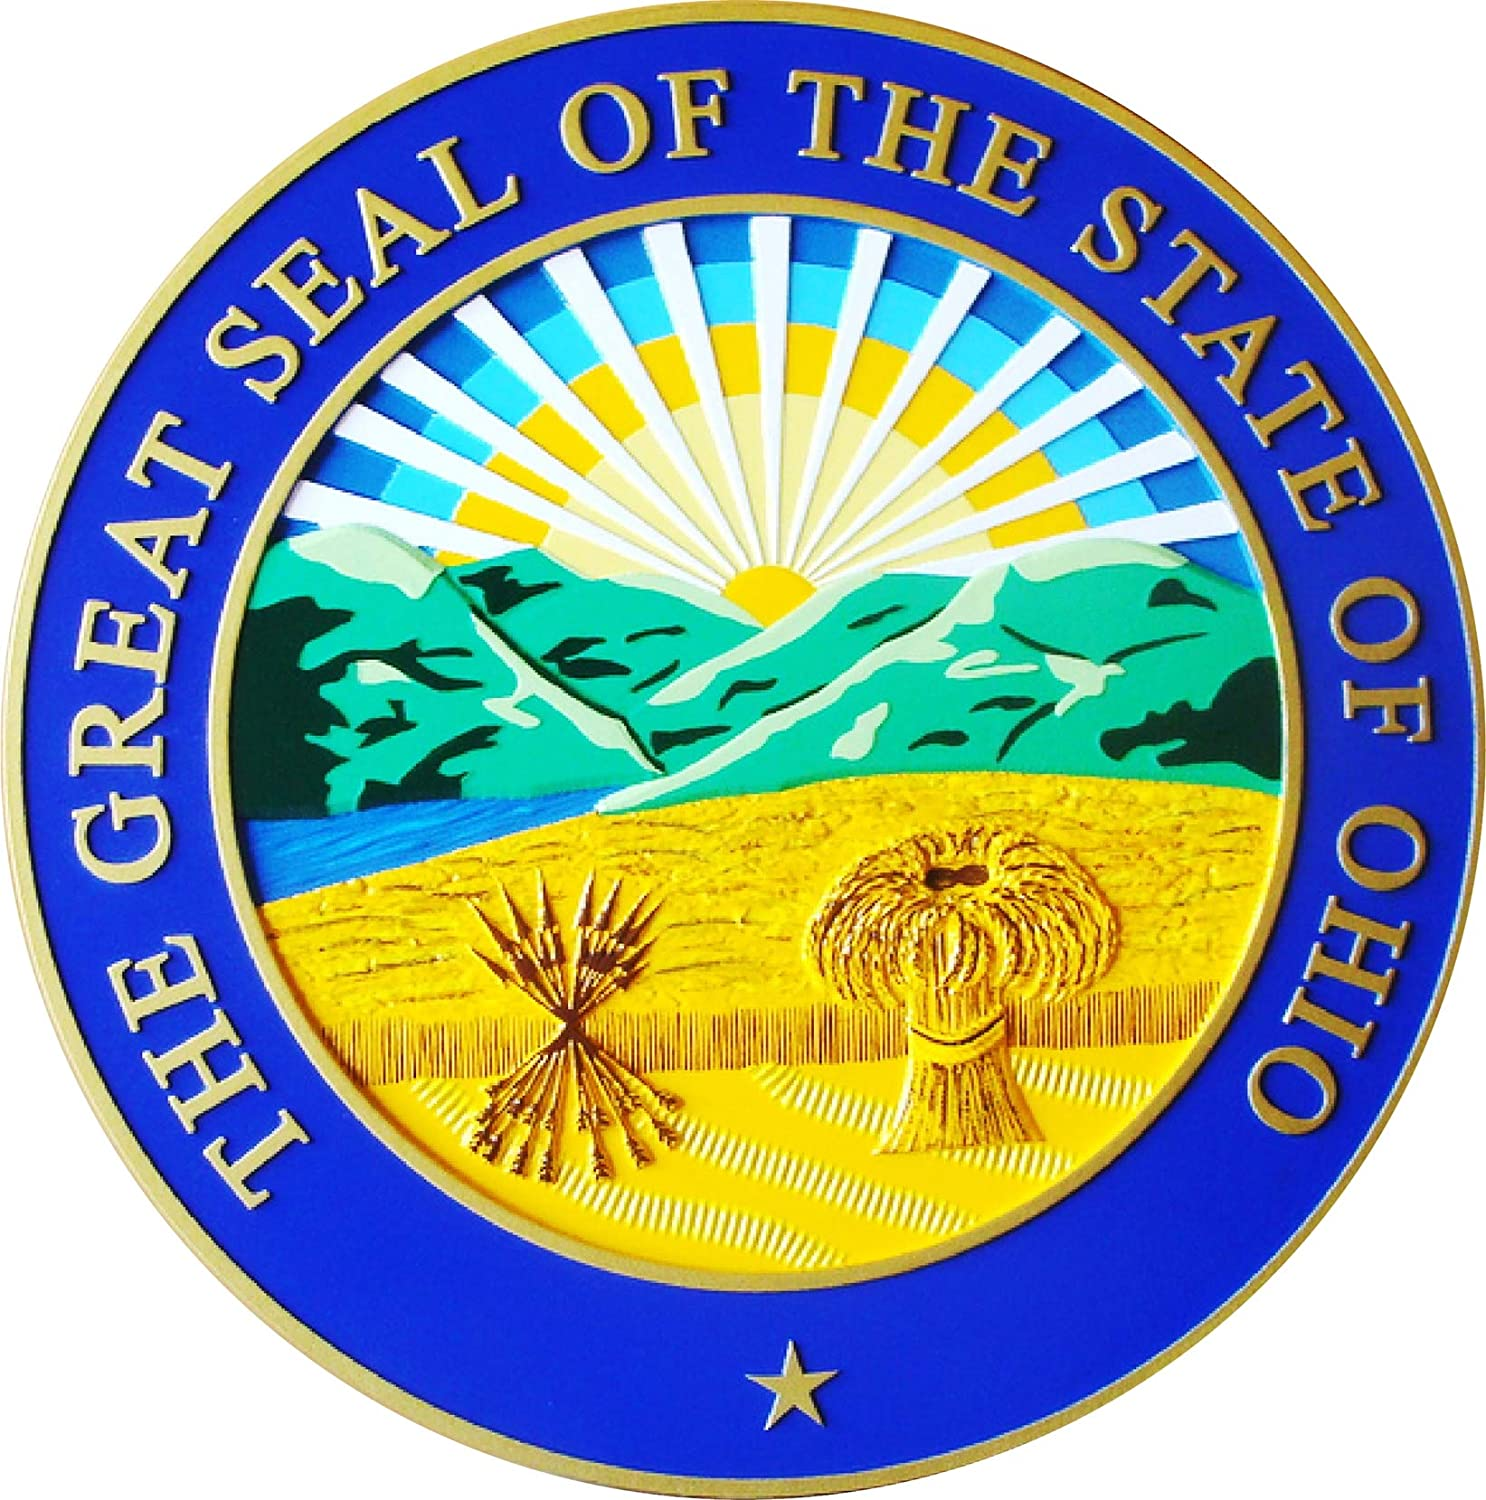 Wall Plaque of The Great Seal of The State of Ohio, Official Colors